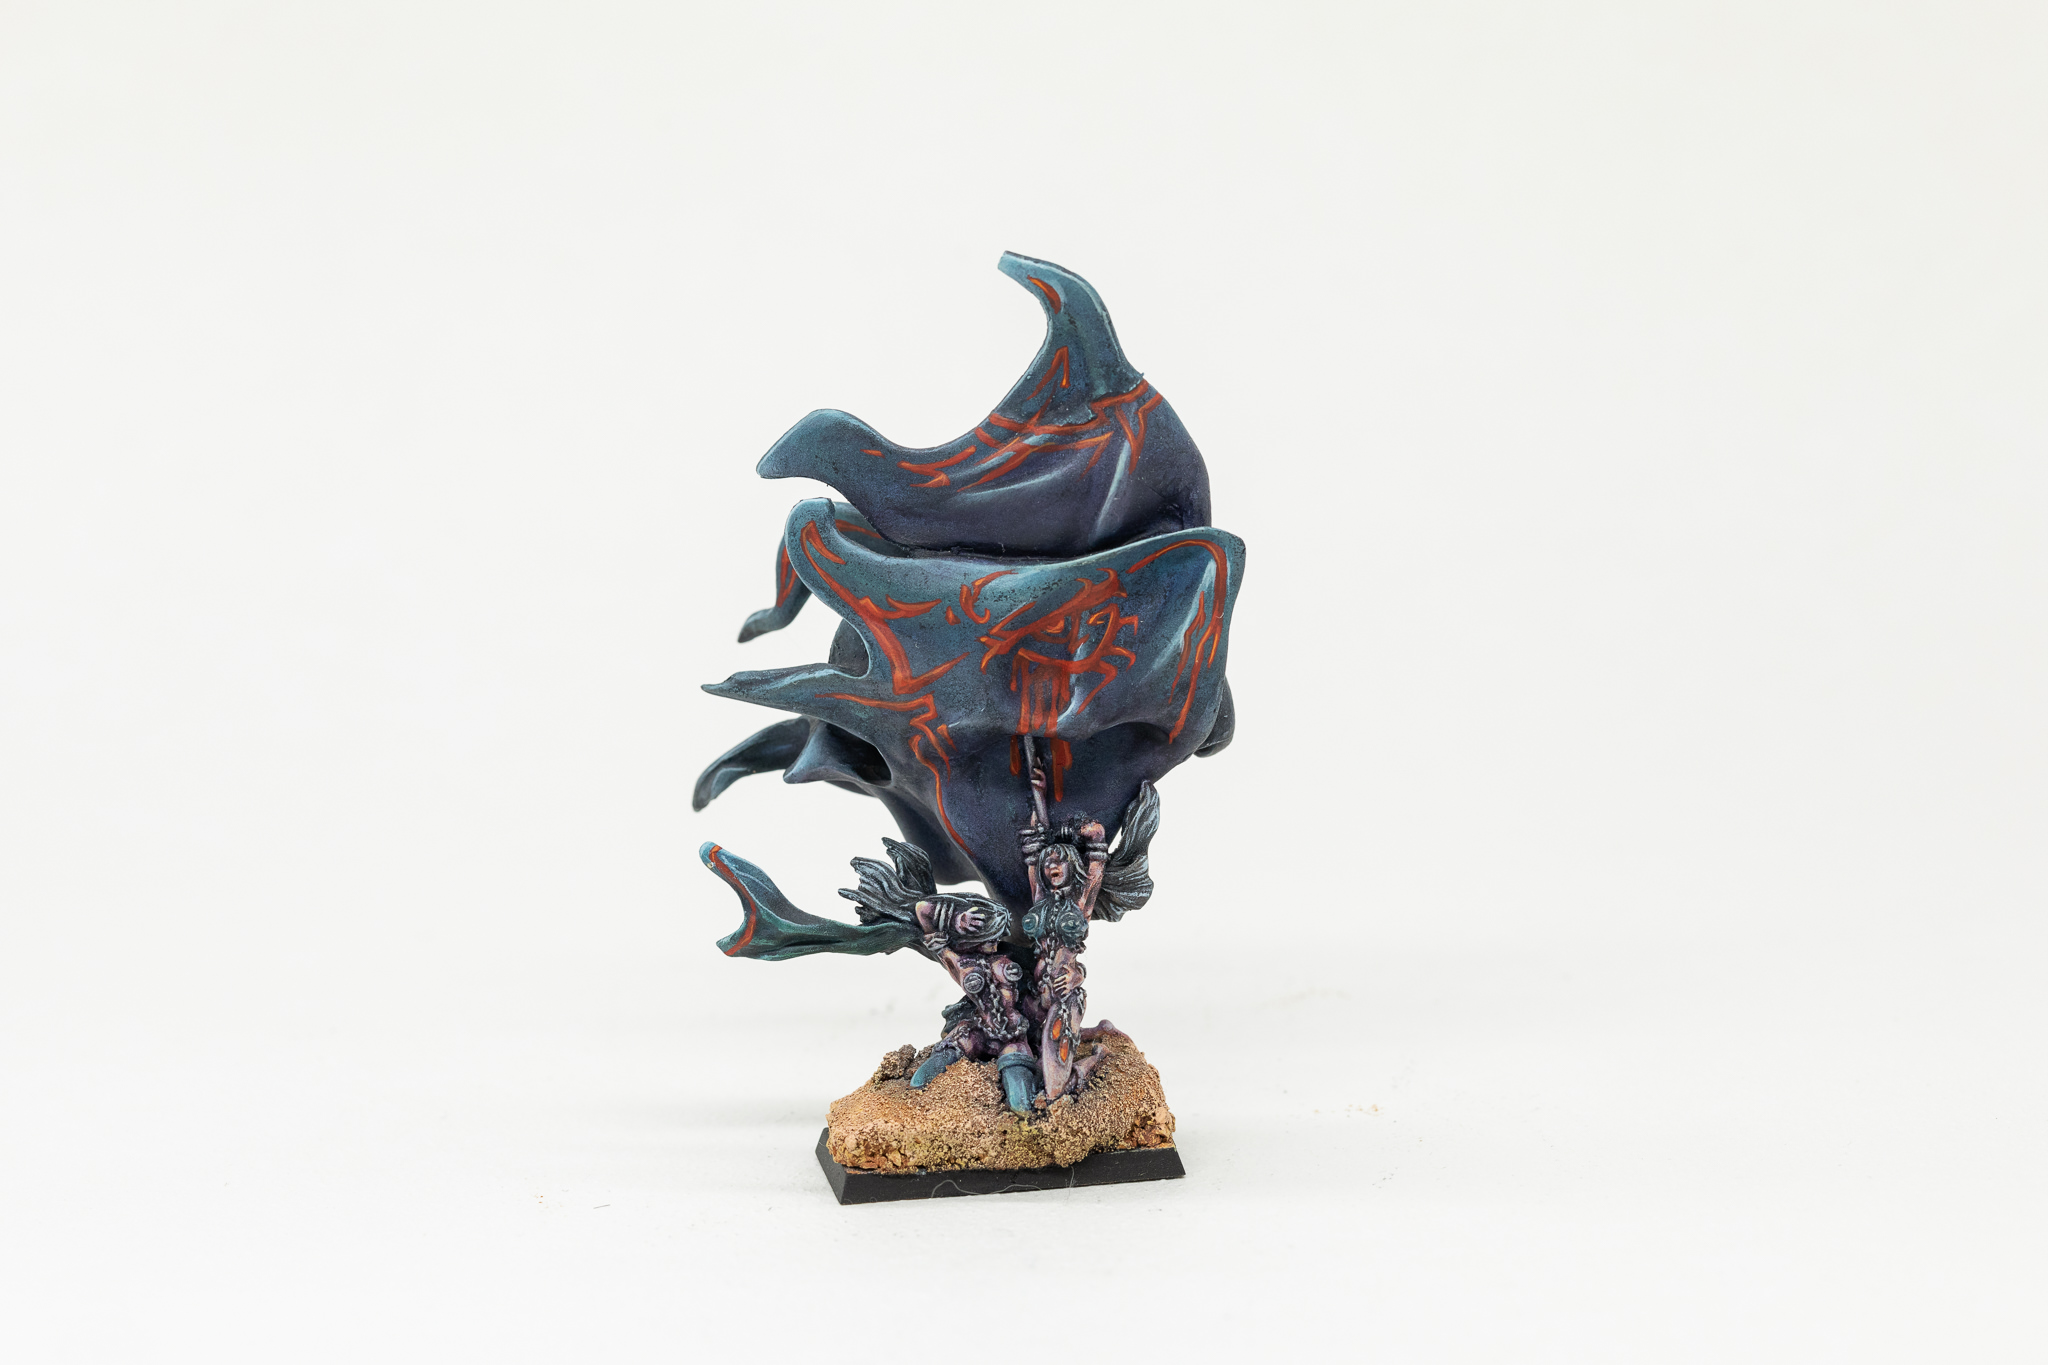 vente-figurines-elfesnoirs0002.jpg